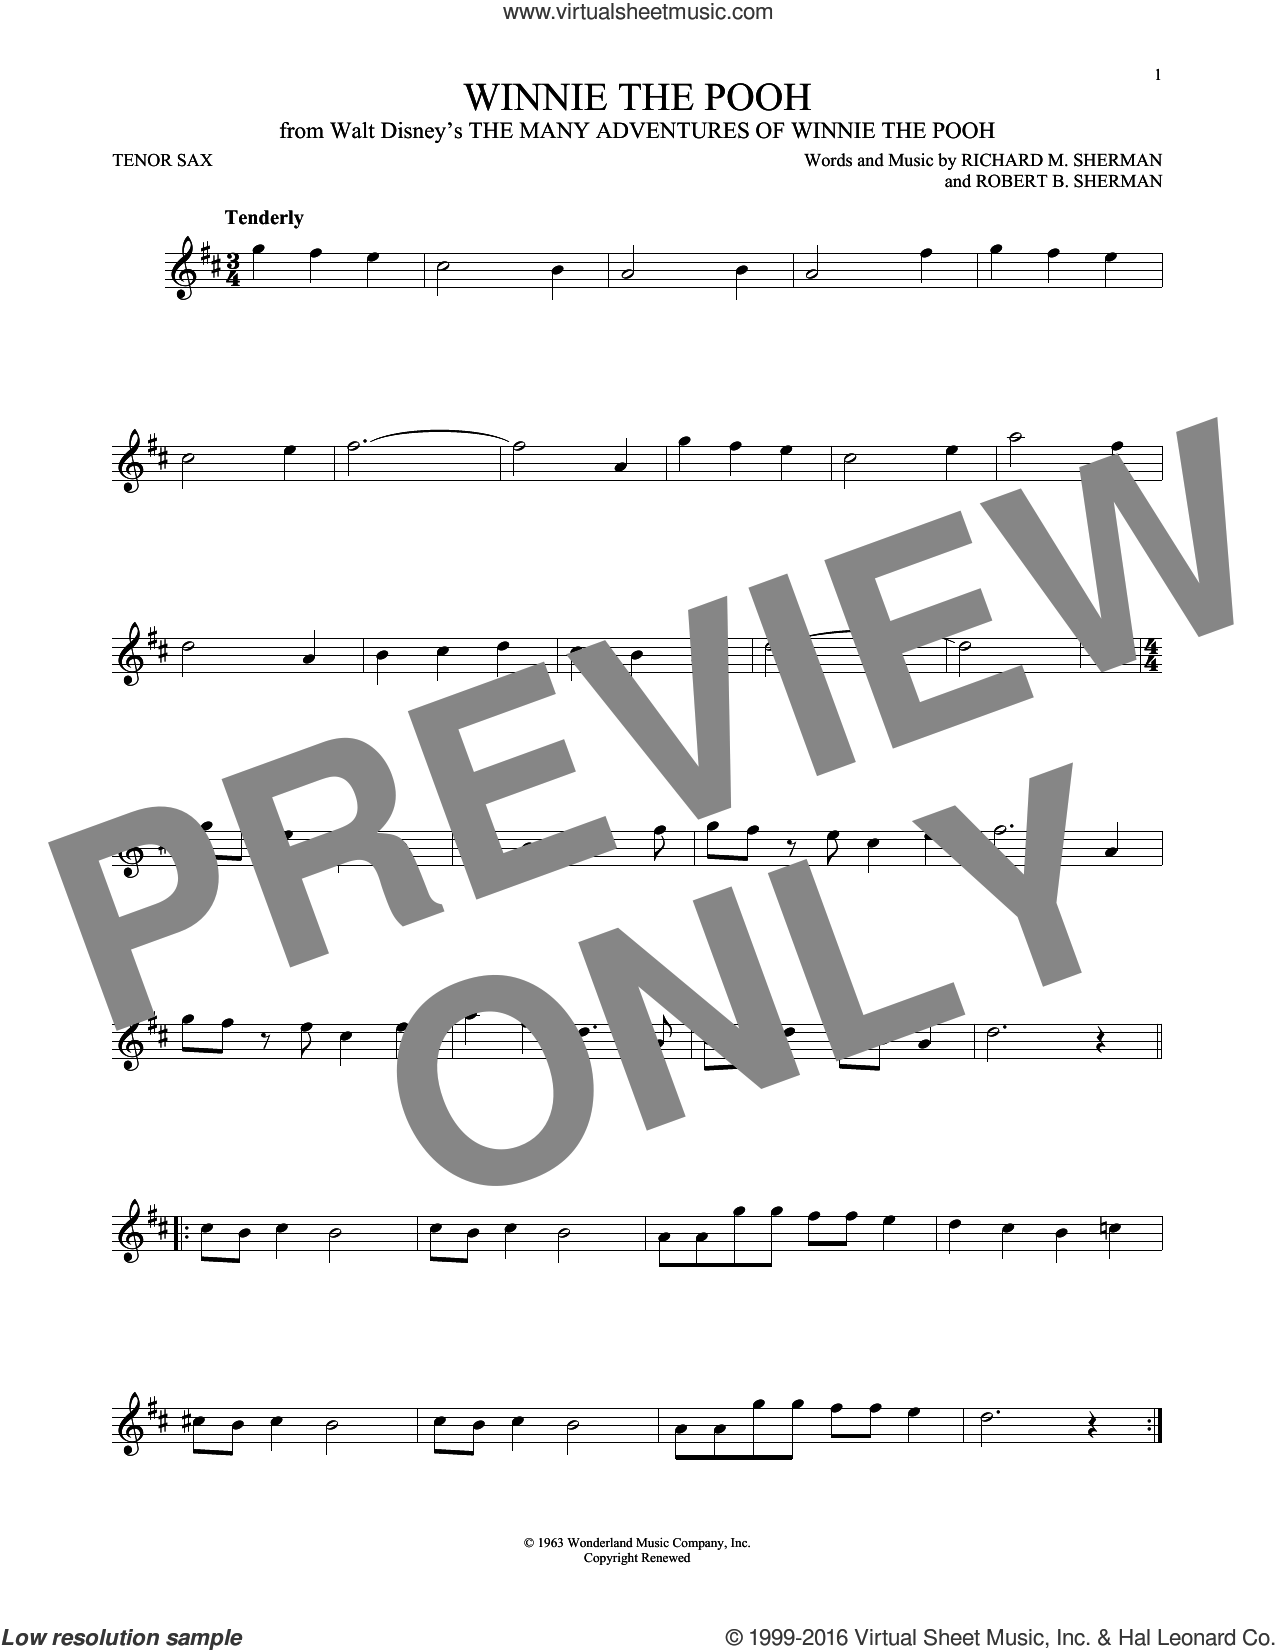 Winnie The Pooh sheet music for tenor saxophone solo by Richard M. Sherman and Robert B. Sherman, intermediate skill level